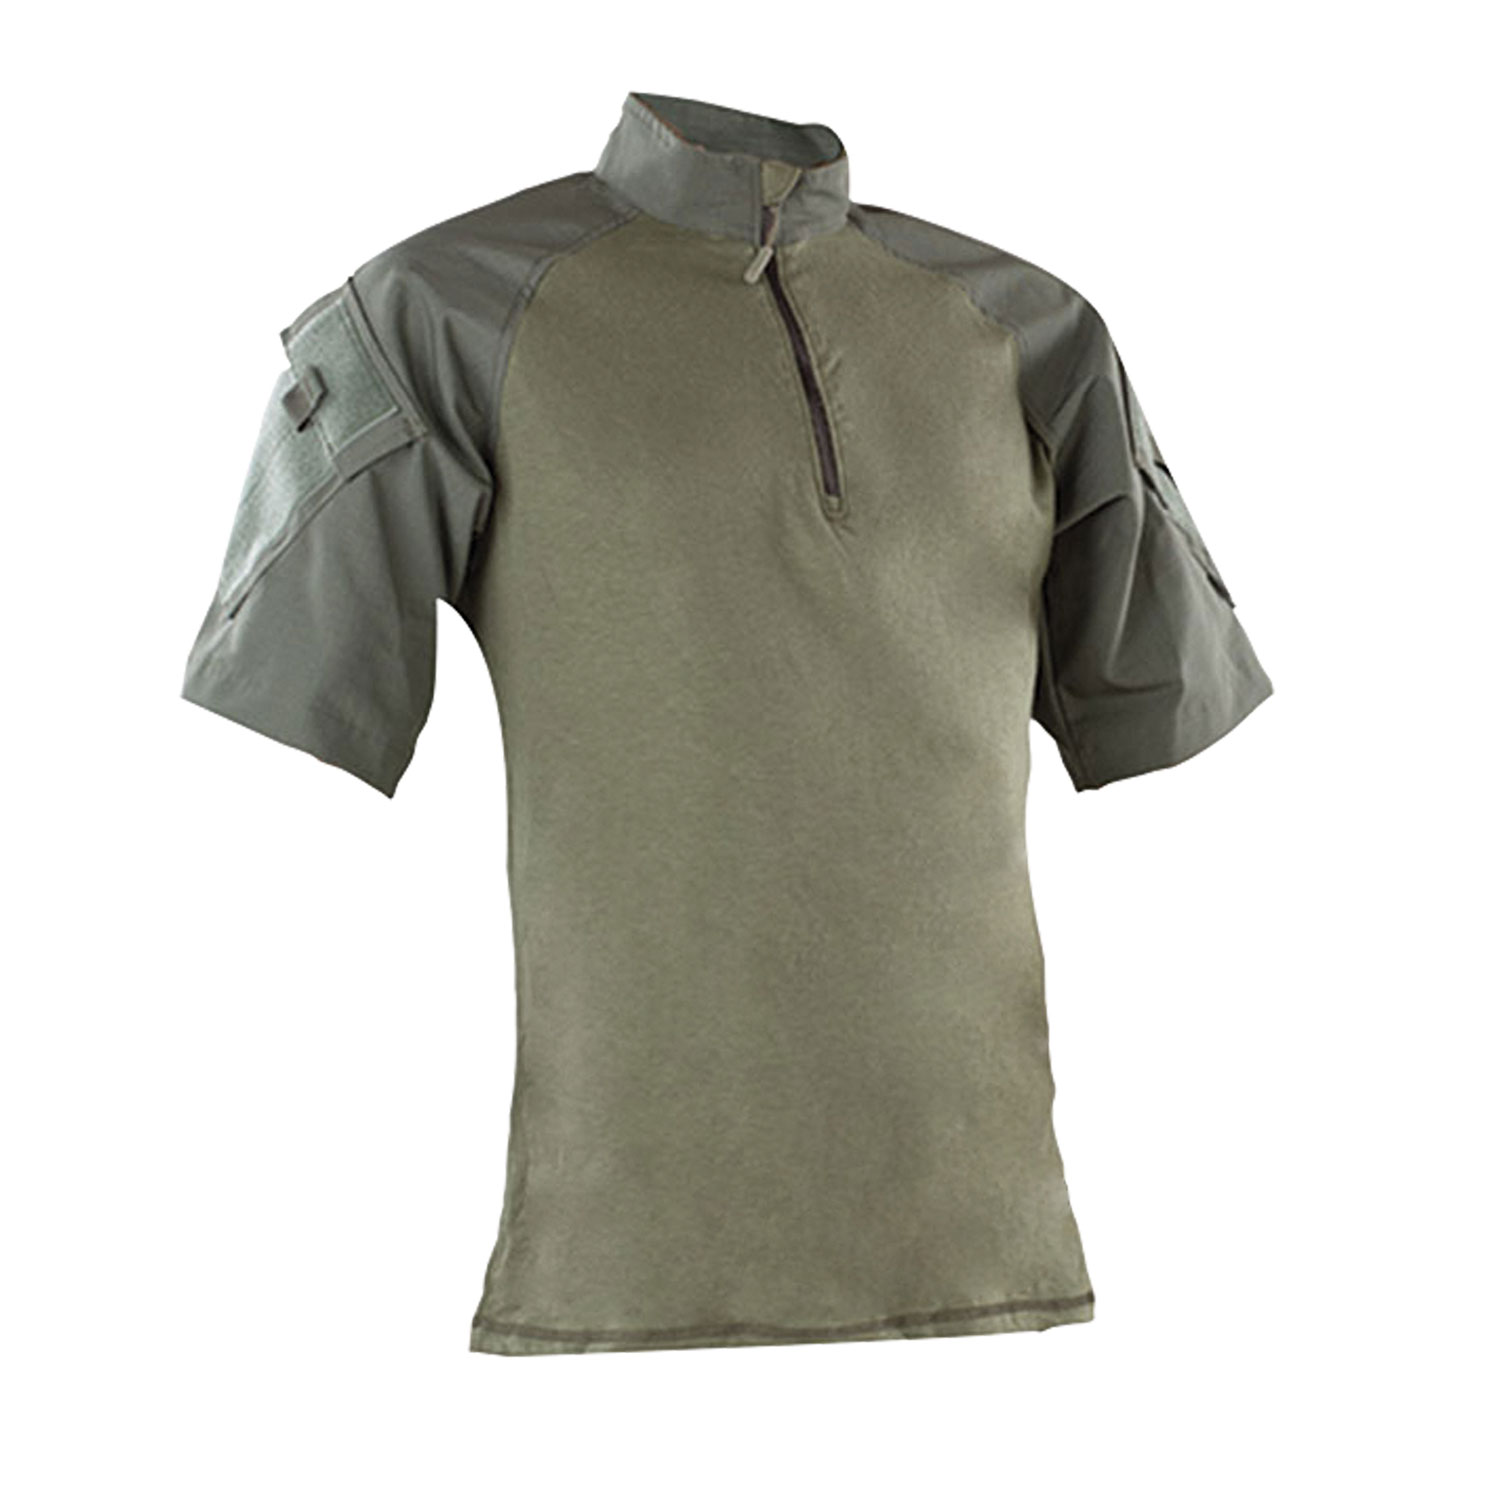 Tru-Spec Short Sleeve Poly Cotton Ripstop Combat Shirt